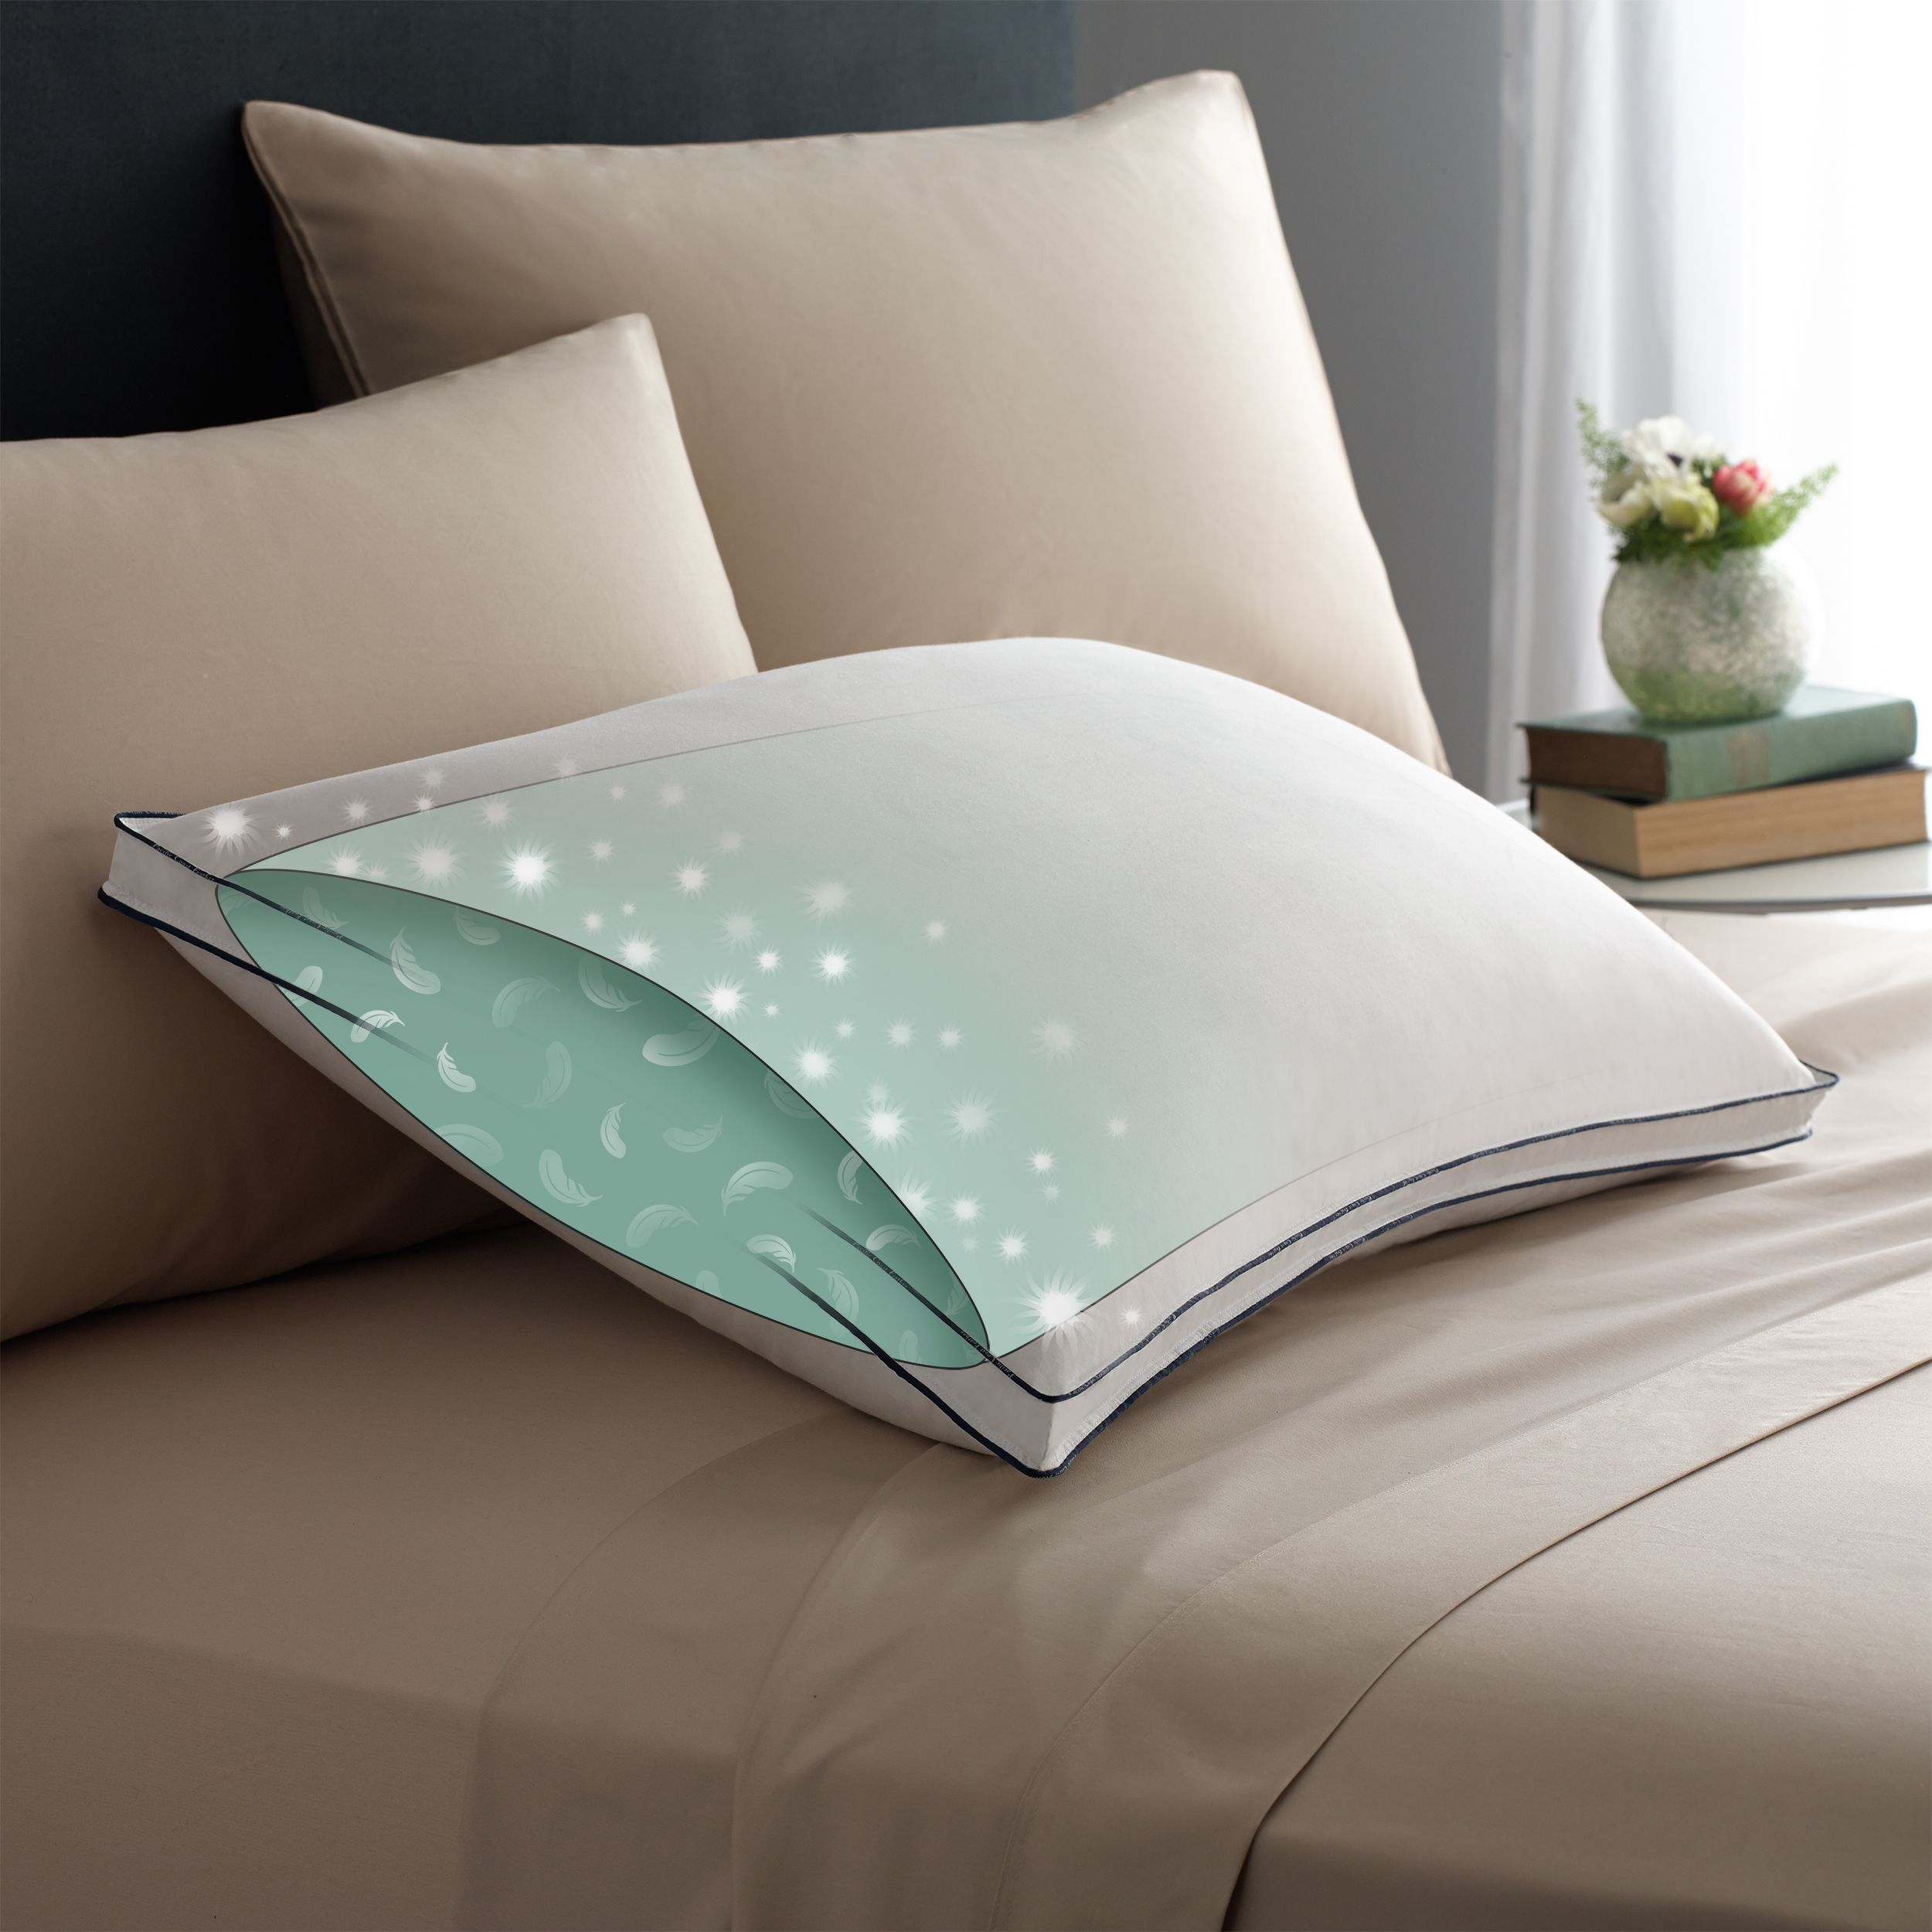 bohemian selling best not vibrant times designer found the york by new designed pillow and pin